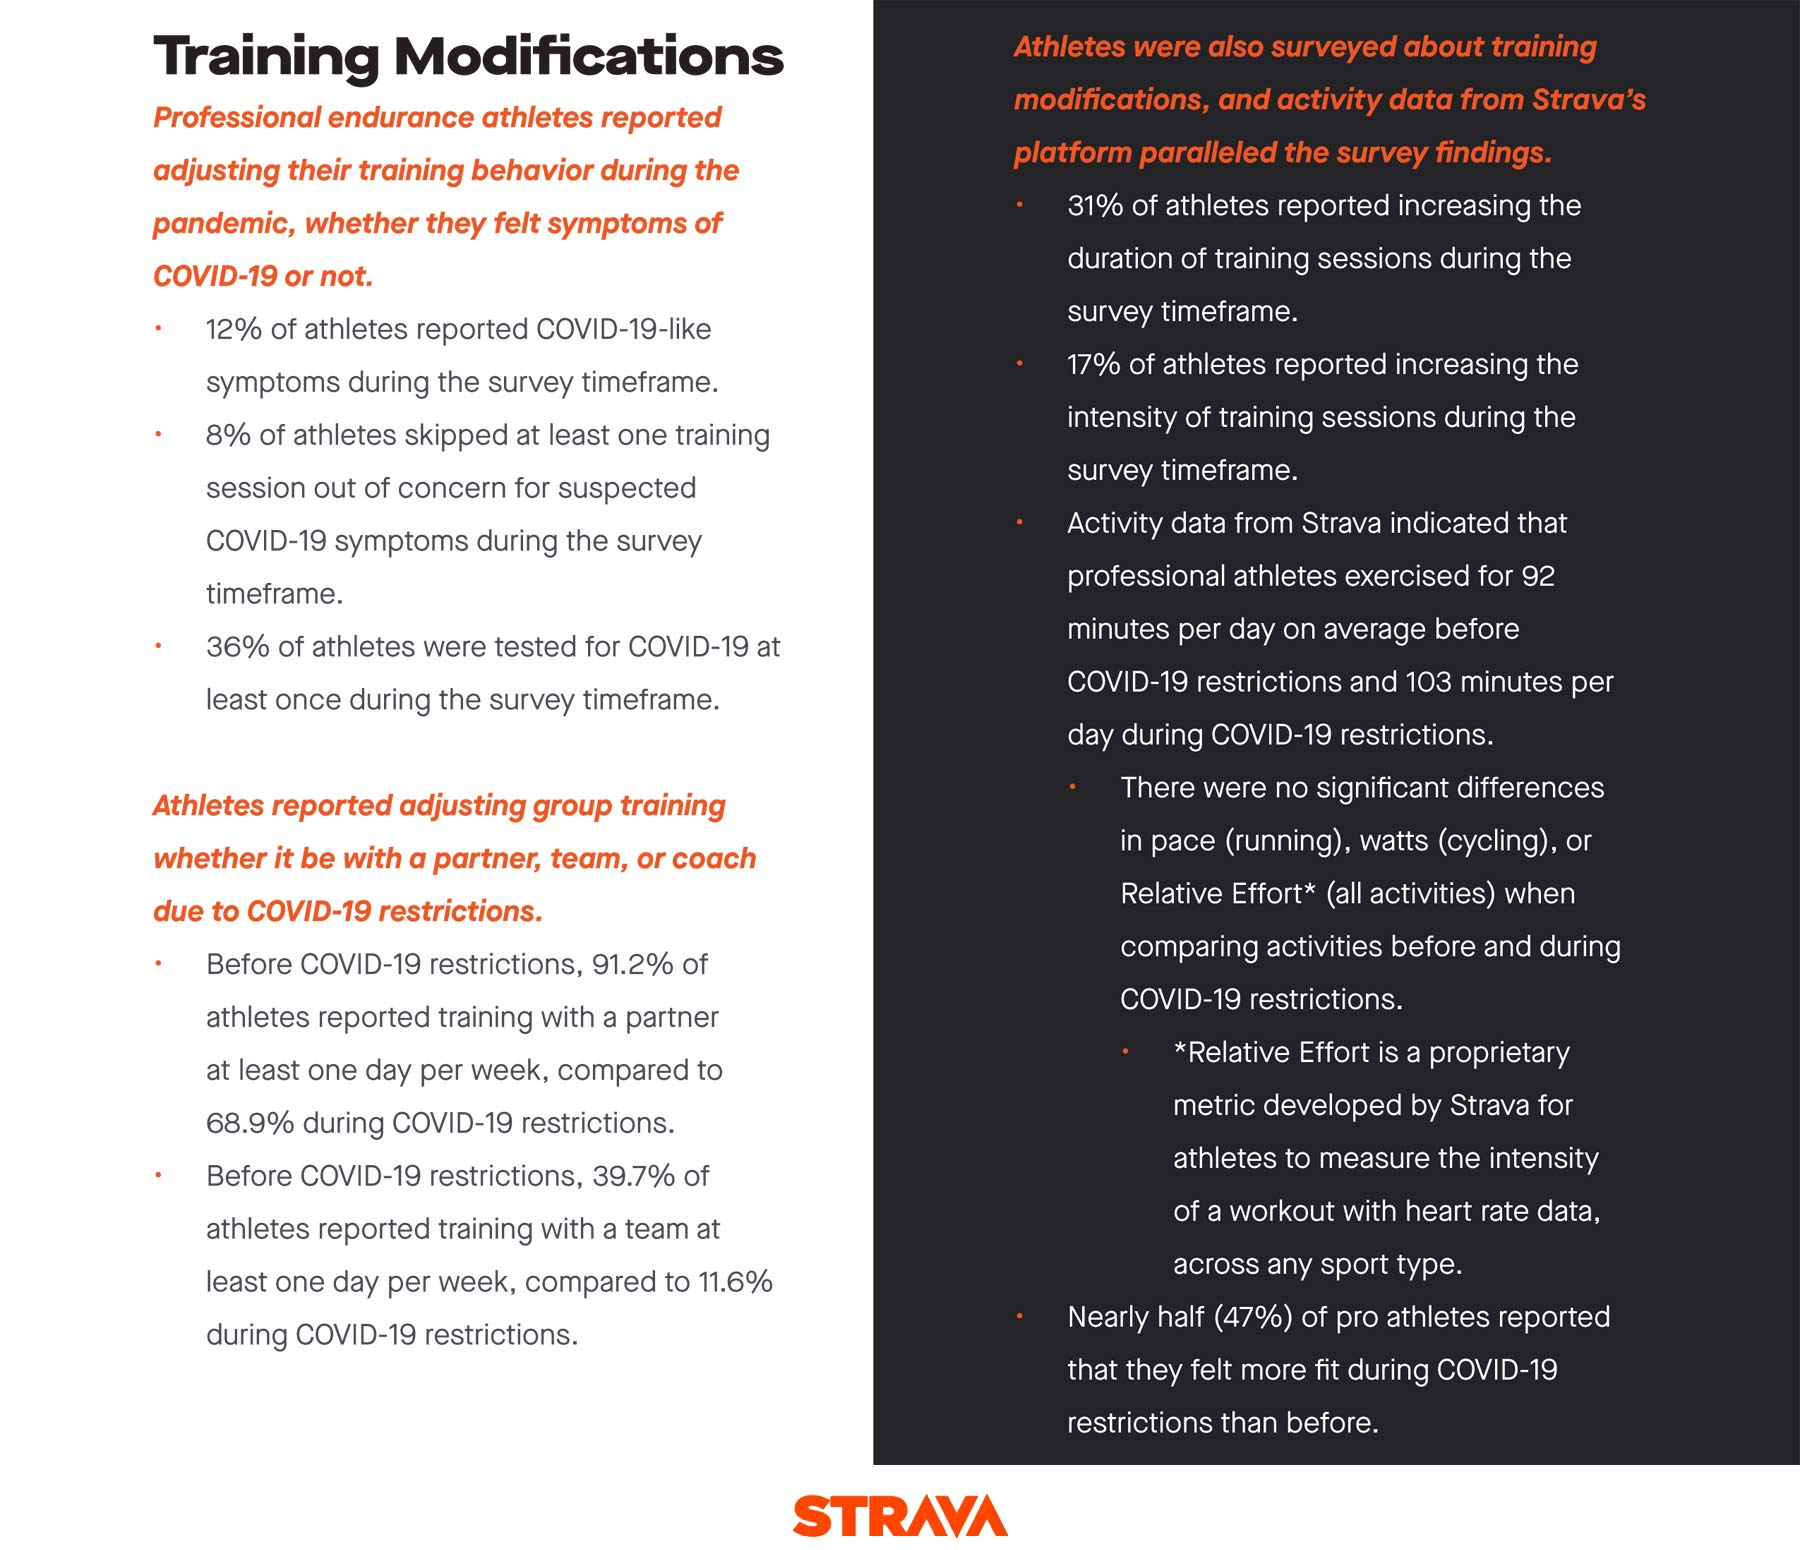 Strava + Stanford professional athlete COVID-19 impacts study, Training modifications